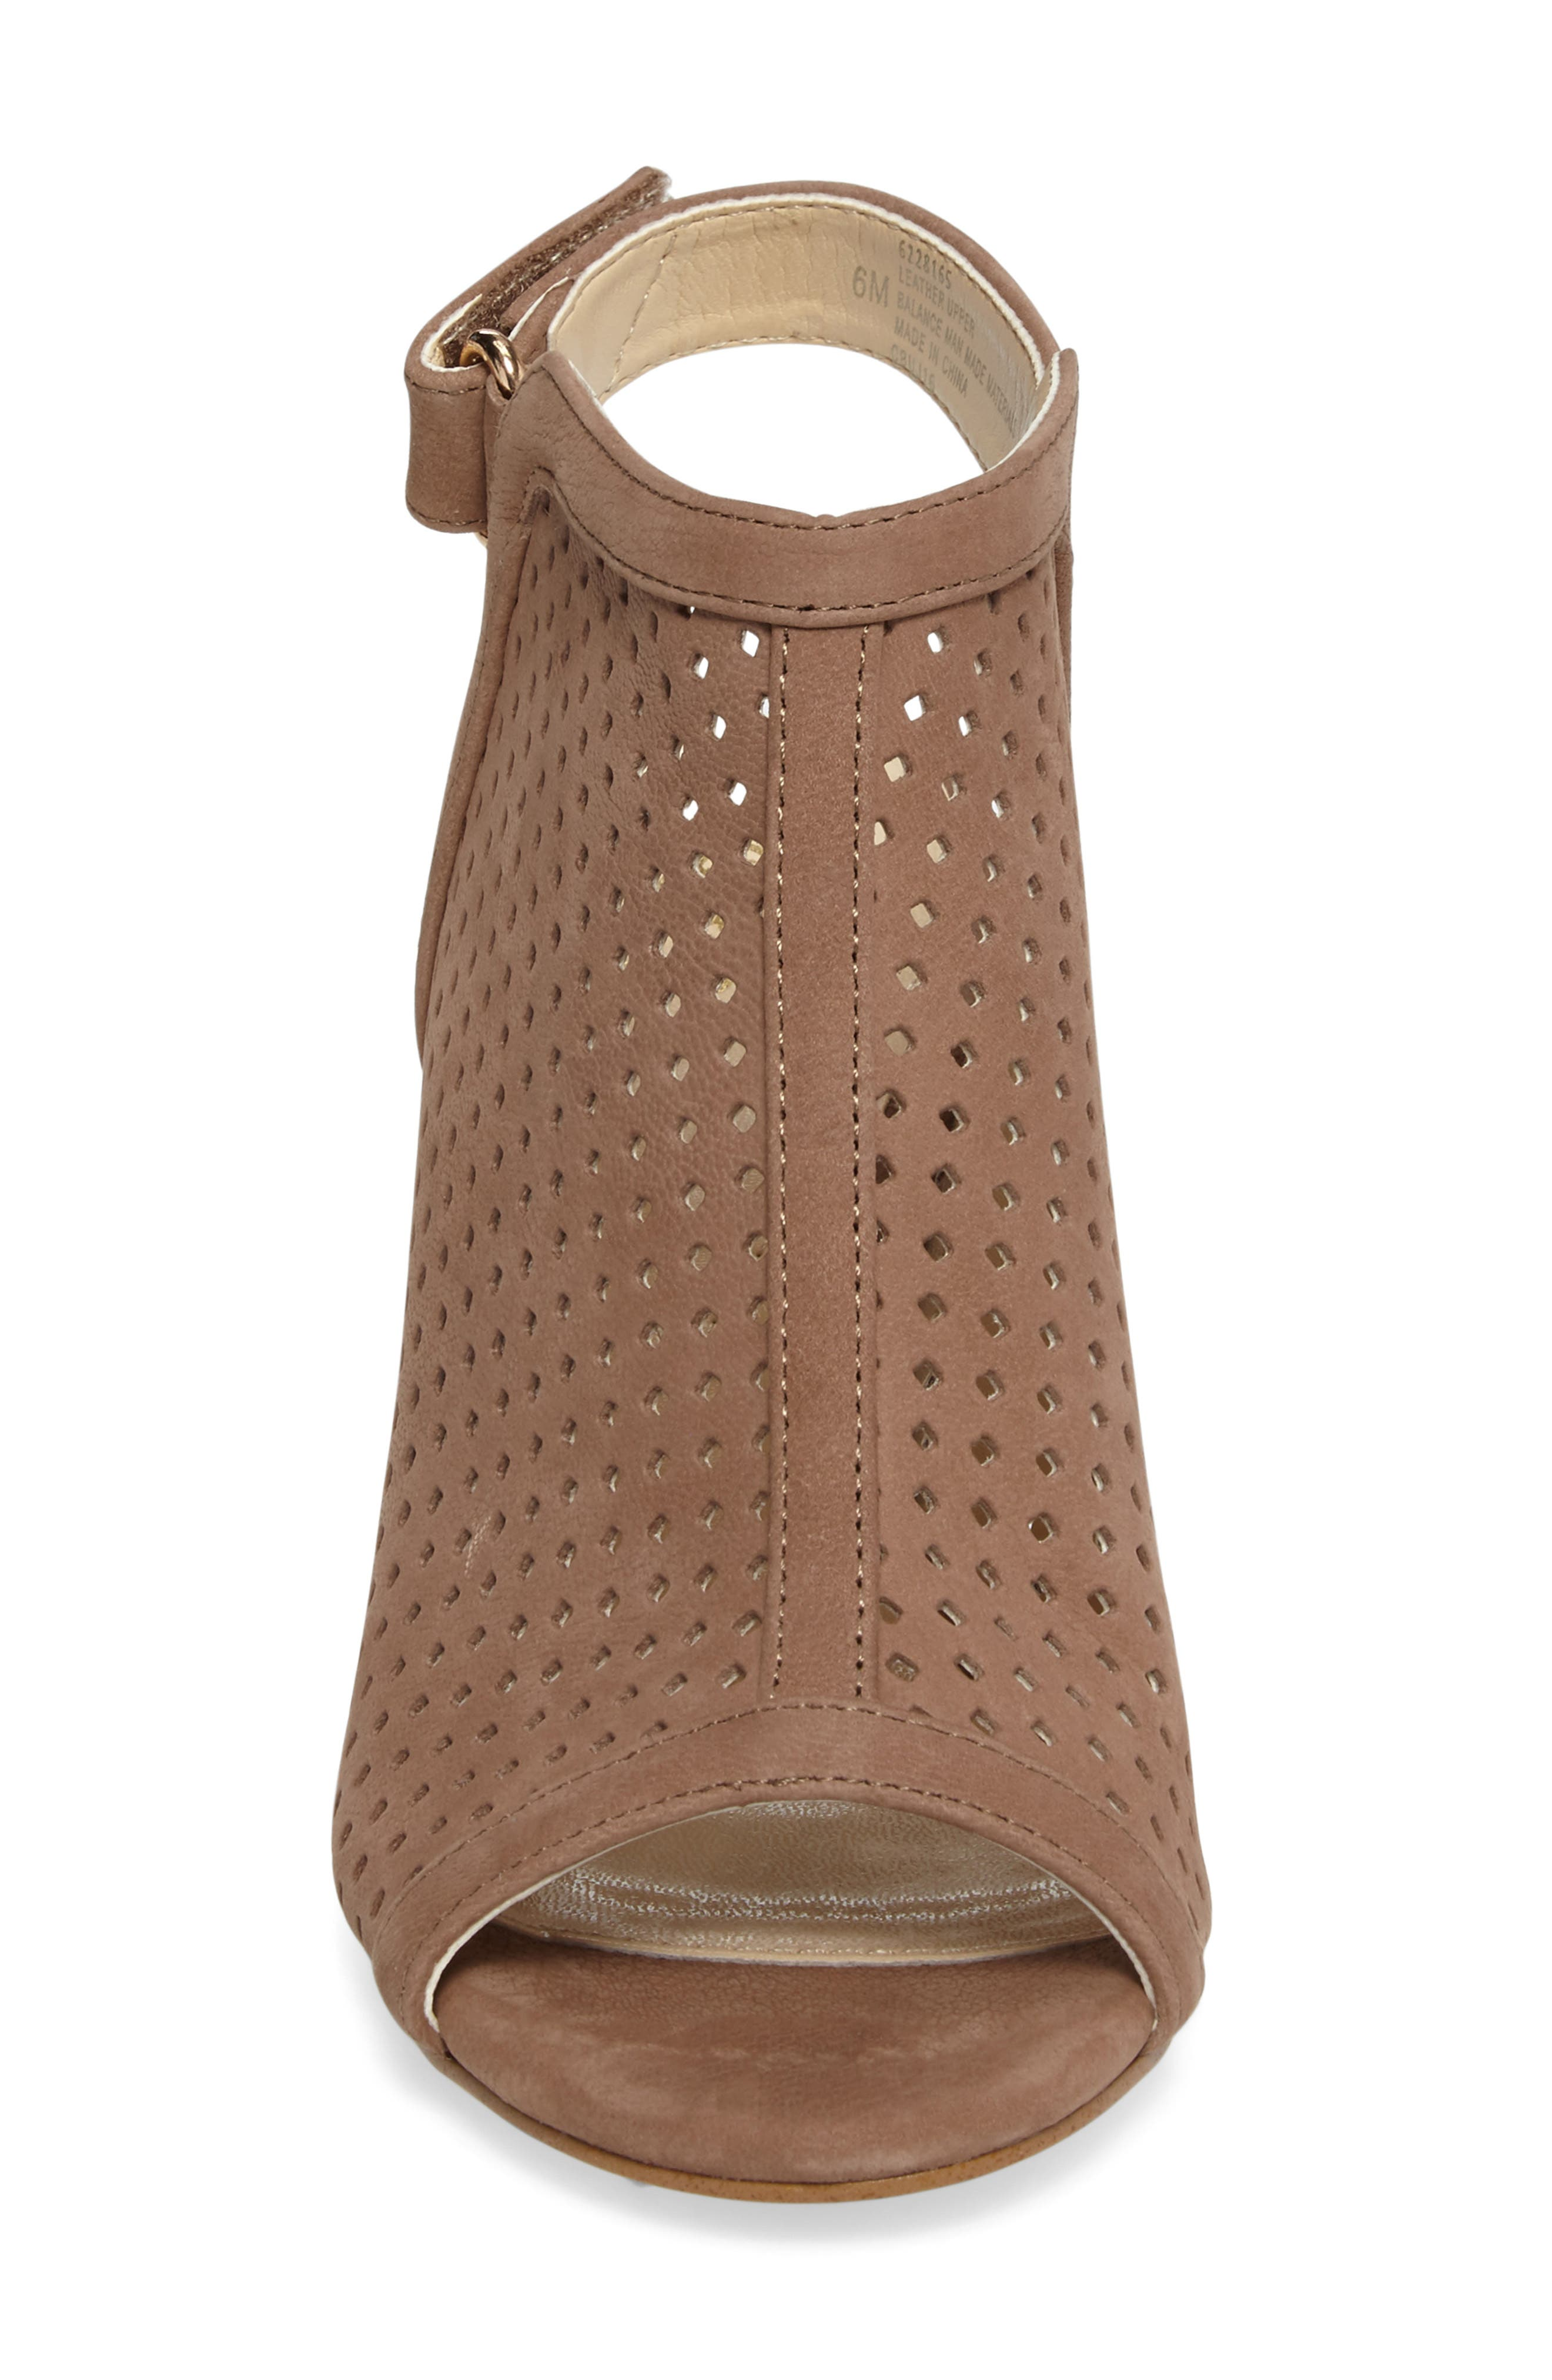 'Lora' Perforated Open-Toe Bootie Sandal,                             Alternate thumbnail 4, color,                             BARLEY LEATHER